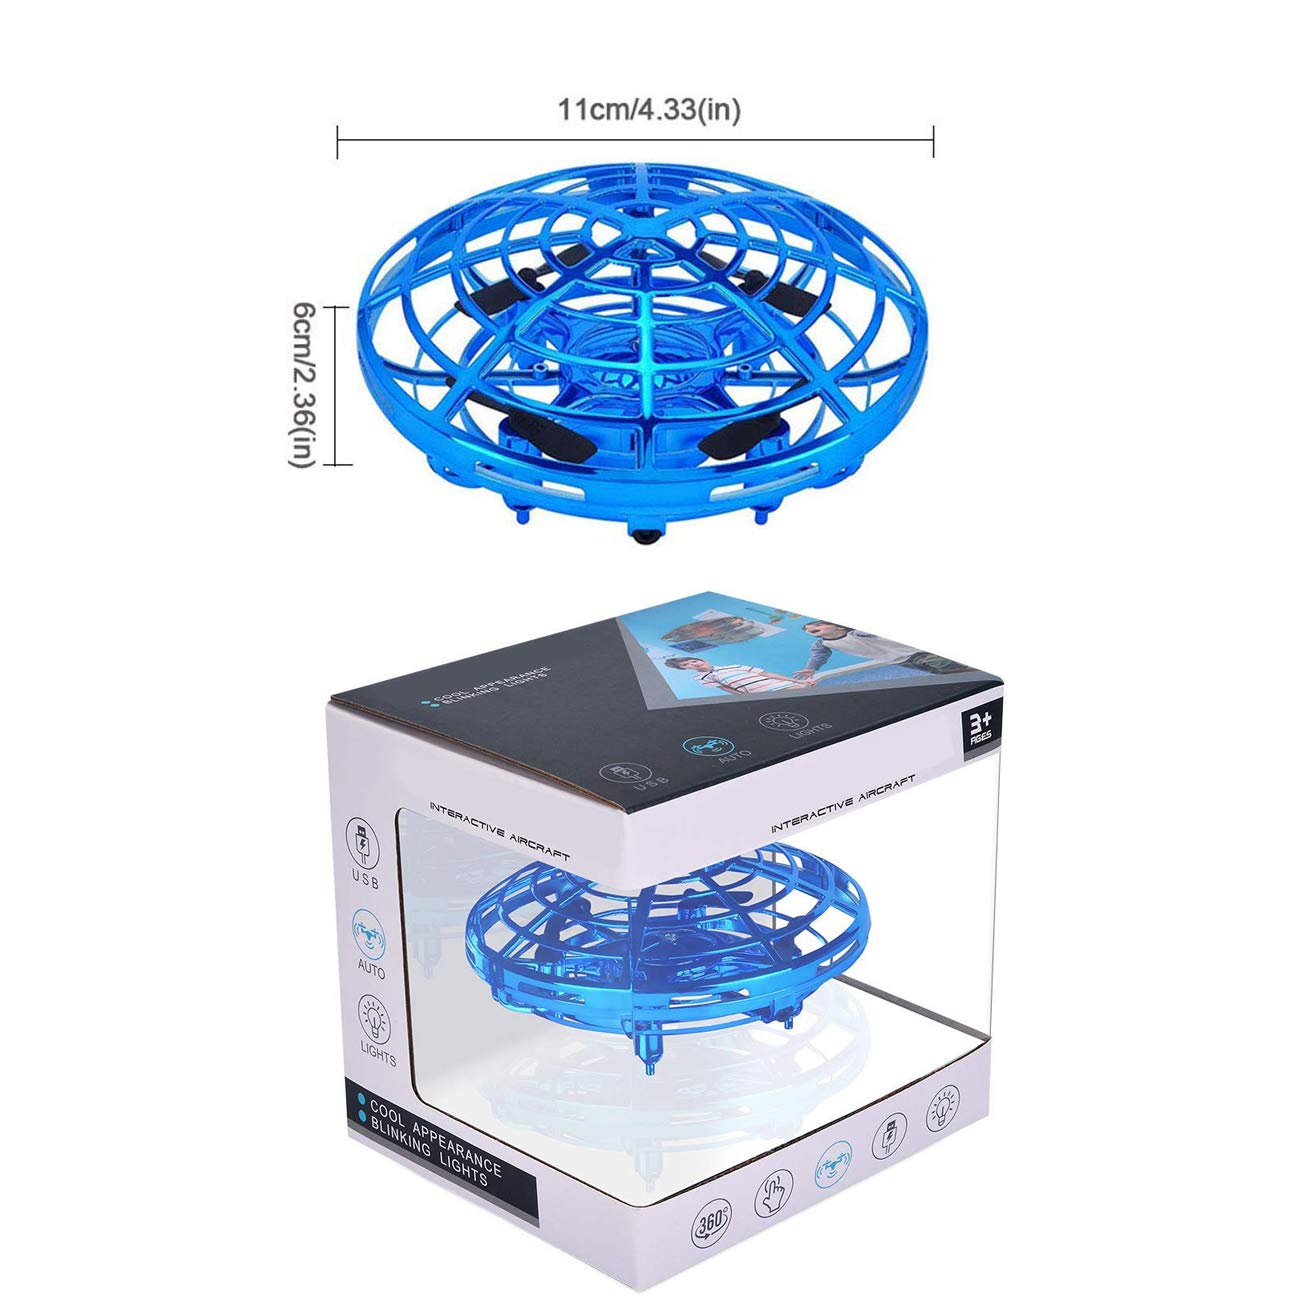 Umiwe Flying Ball Drone,Interactive Infrared Induction Helicopter Ball with 3 Micro Drone Sensors - Hands Free Hover Drone with 360°Rotating Shinning Led Lights for Beginner Drones Flying Toys by Umiwe (Image #7)